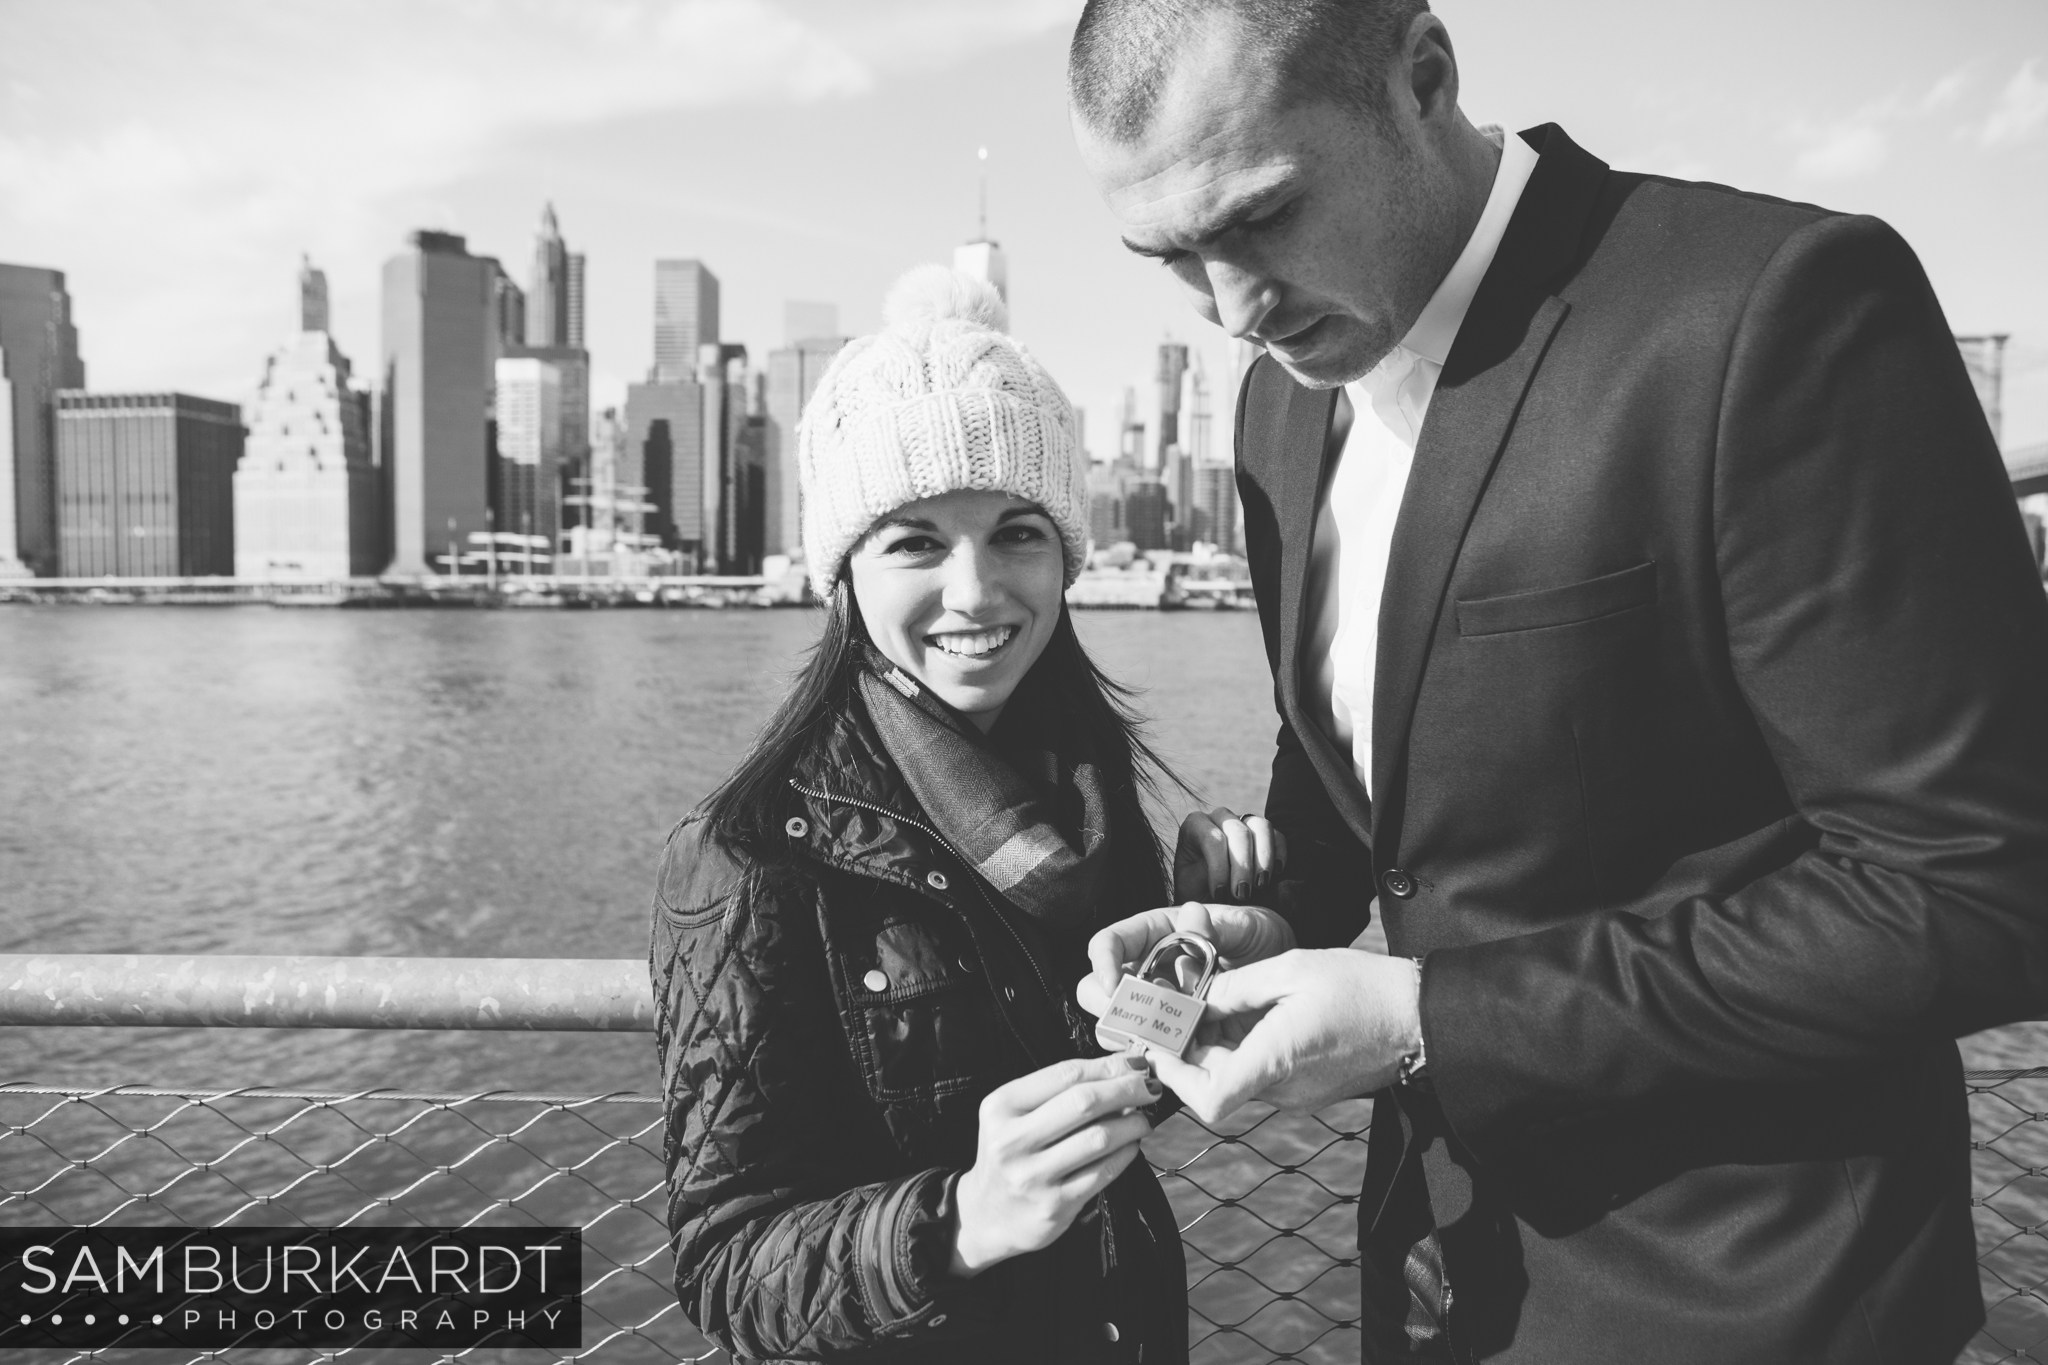 samburkardt_brooklyn_bridge_new_york_engagement_proposal_skyline_0010.jpg